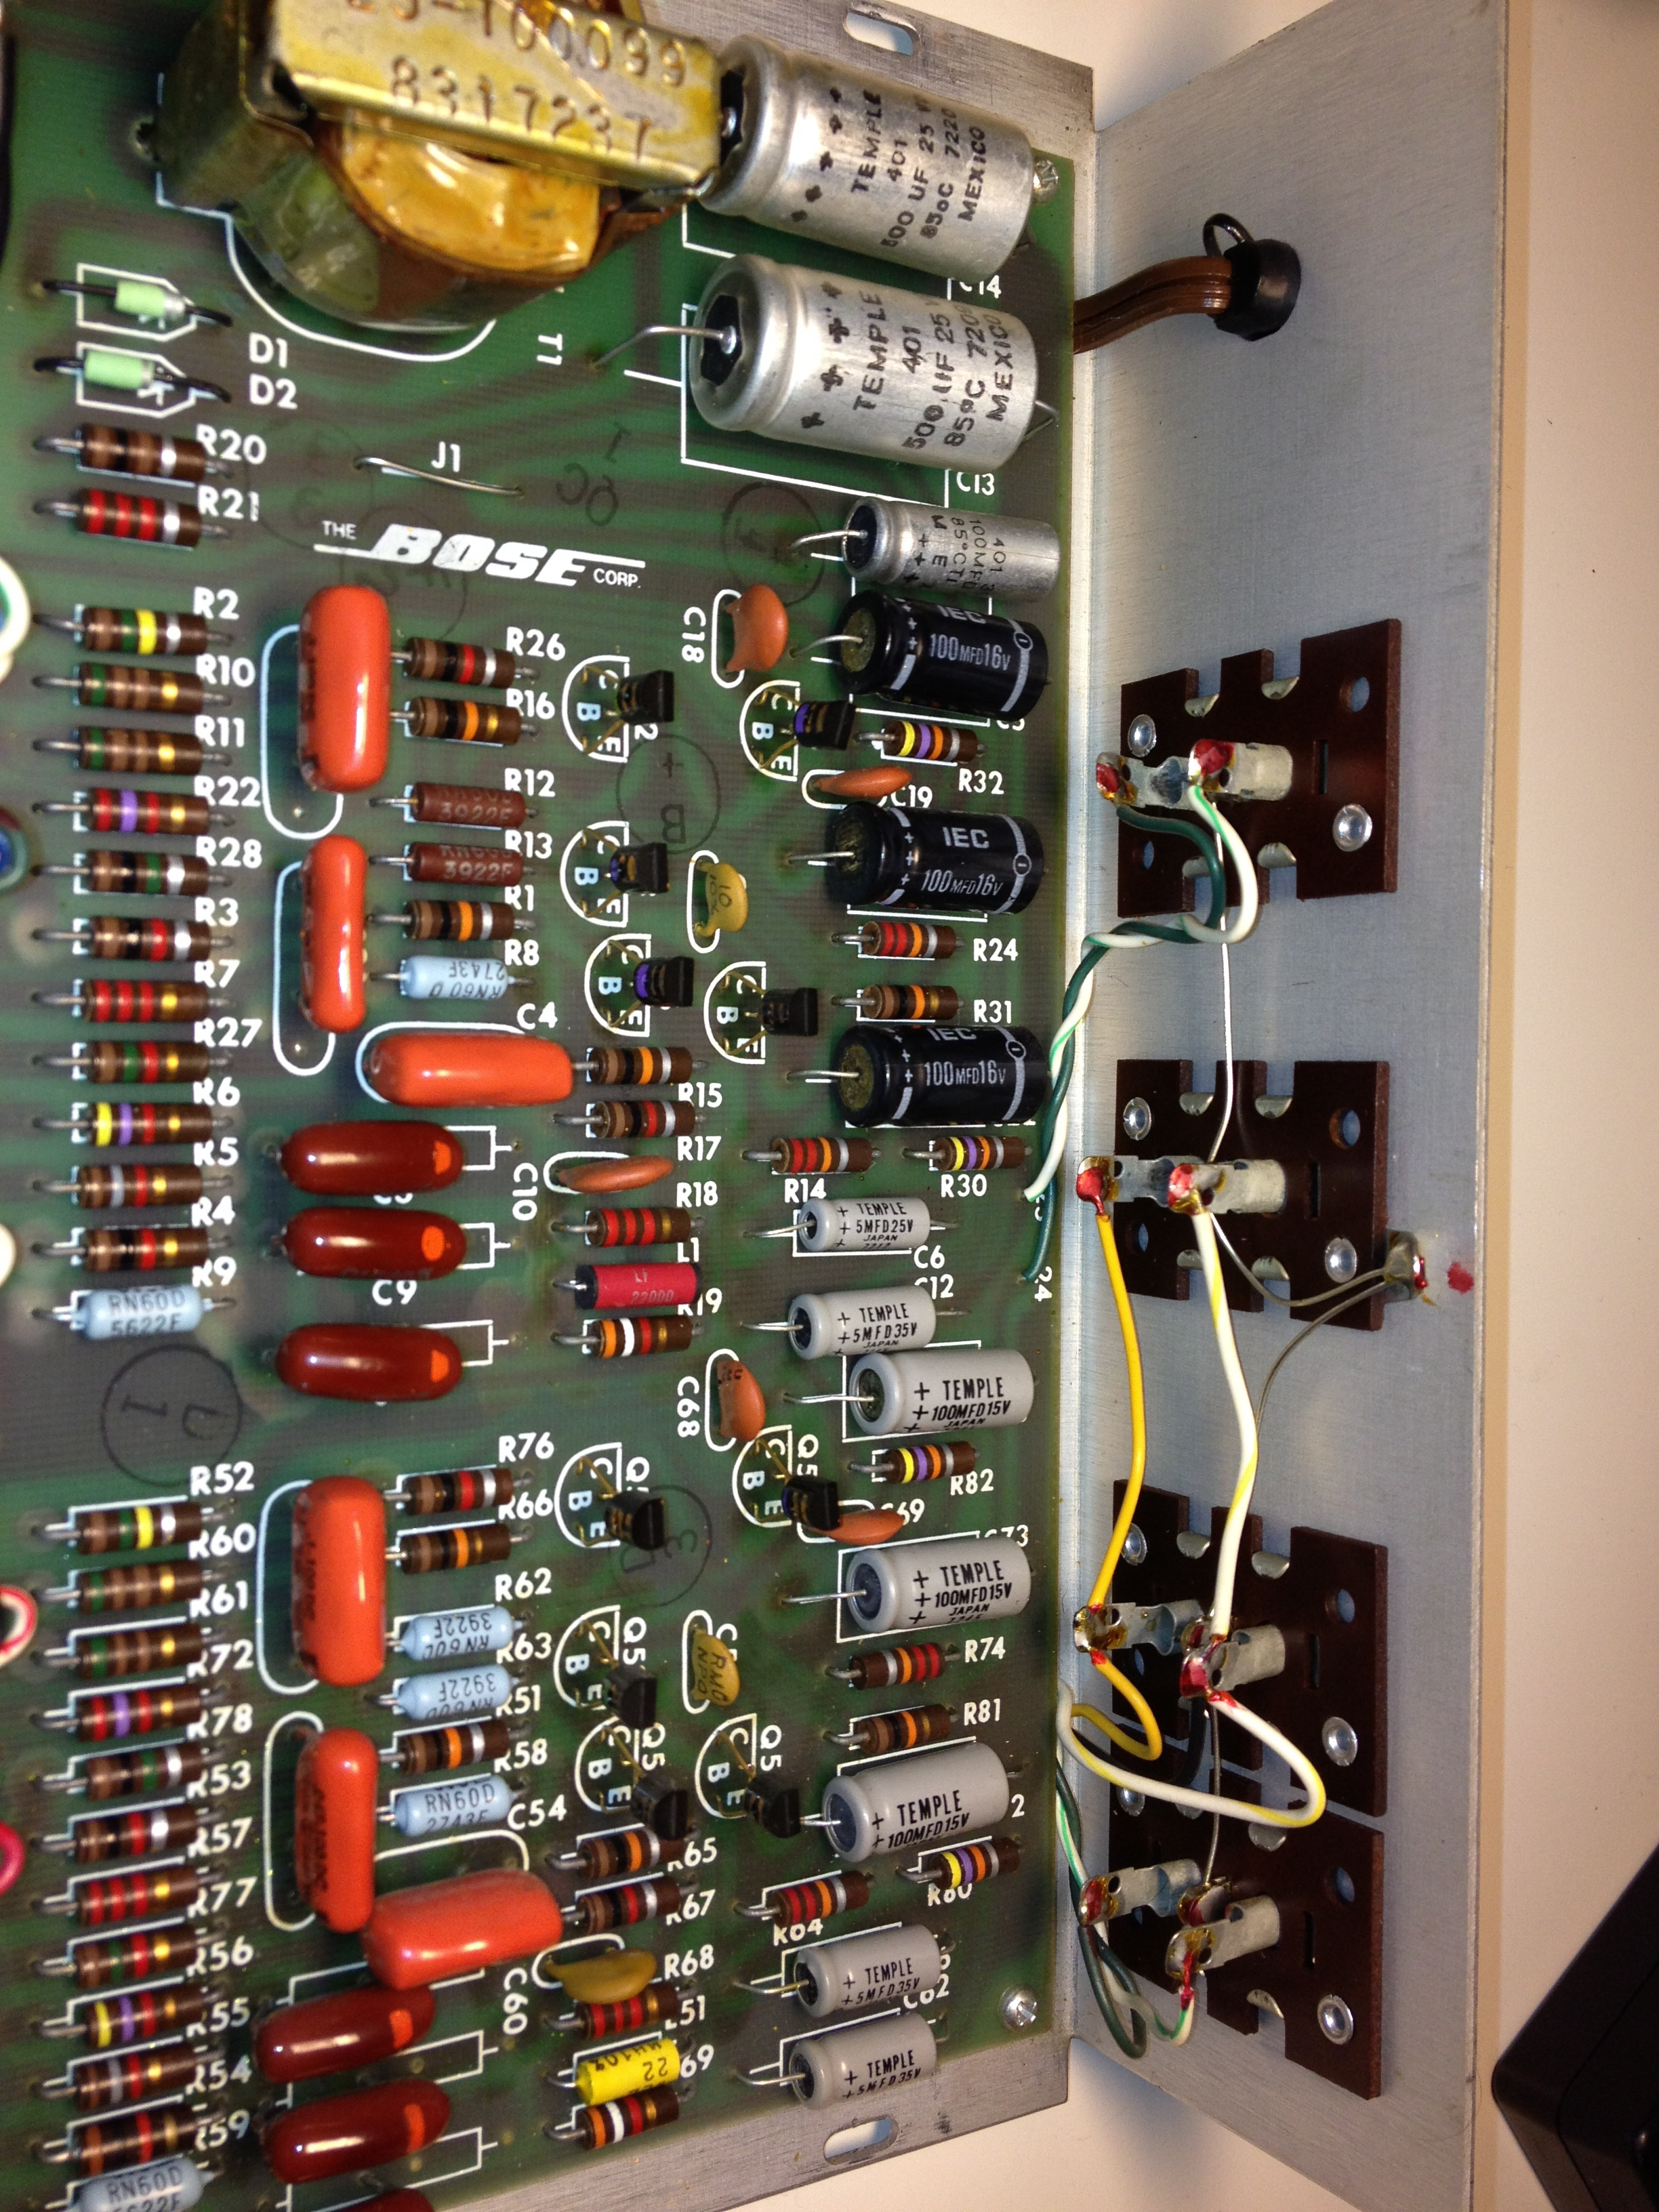 bose 901 equalizer repair jpreardon com rh jpreardon com bose 901 series i manual Bose 901 Speaker History